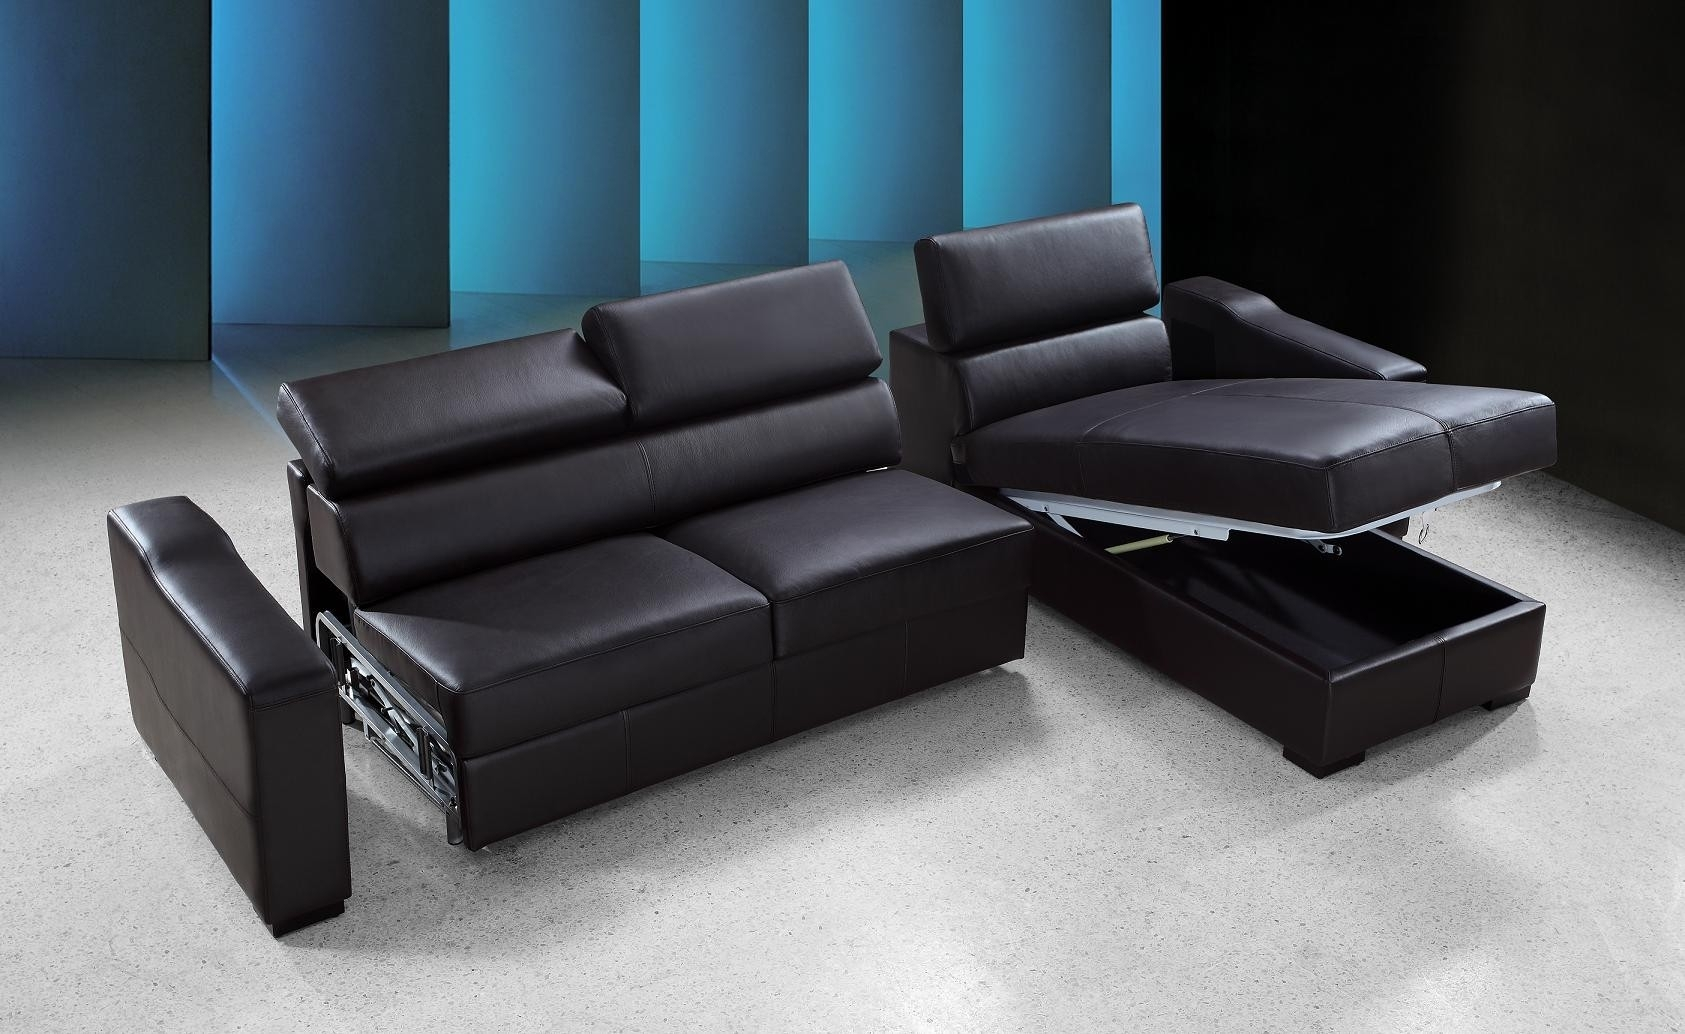 10 Best Collection Of 10x8 Sectional Sofas Sofa Ideas